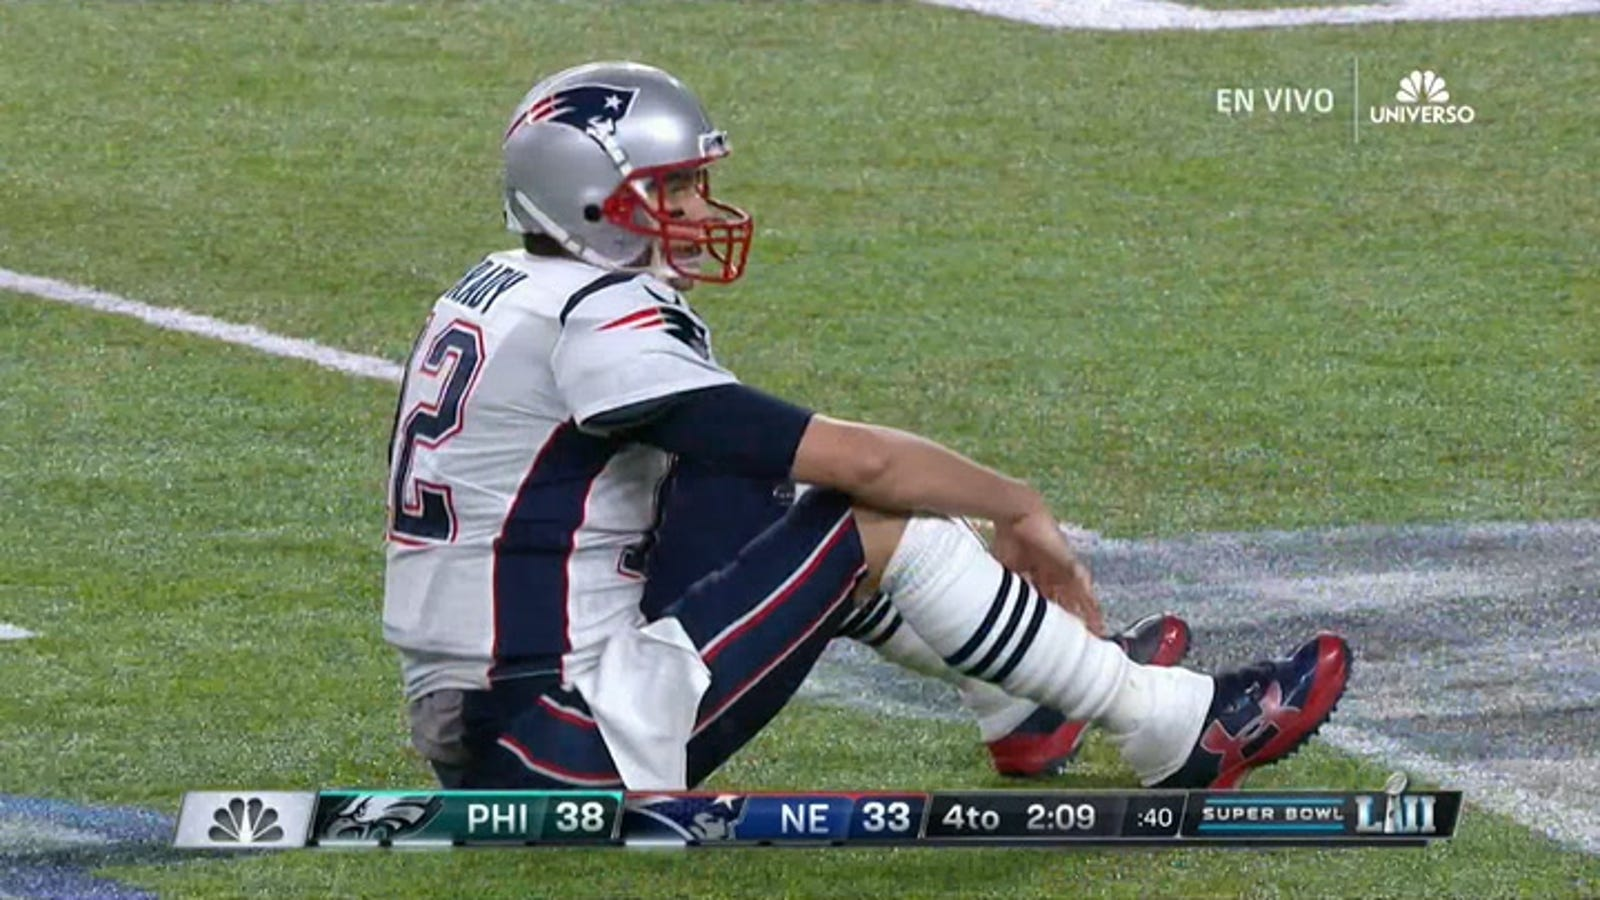 The Tom Brady Strip Sack, As Called By Announcers From